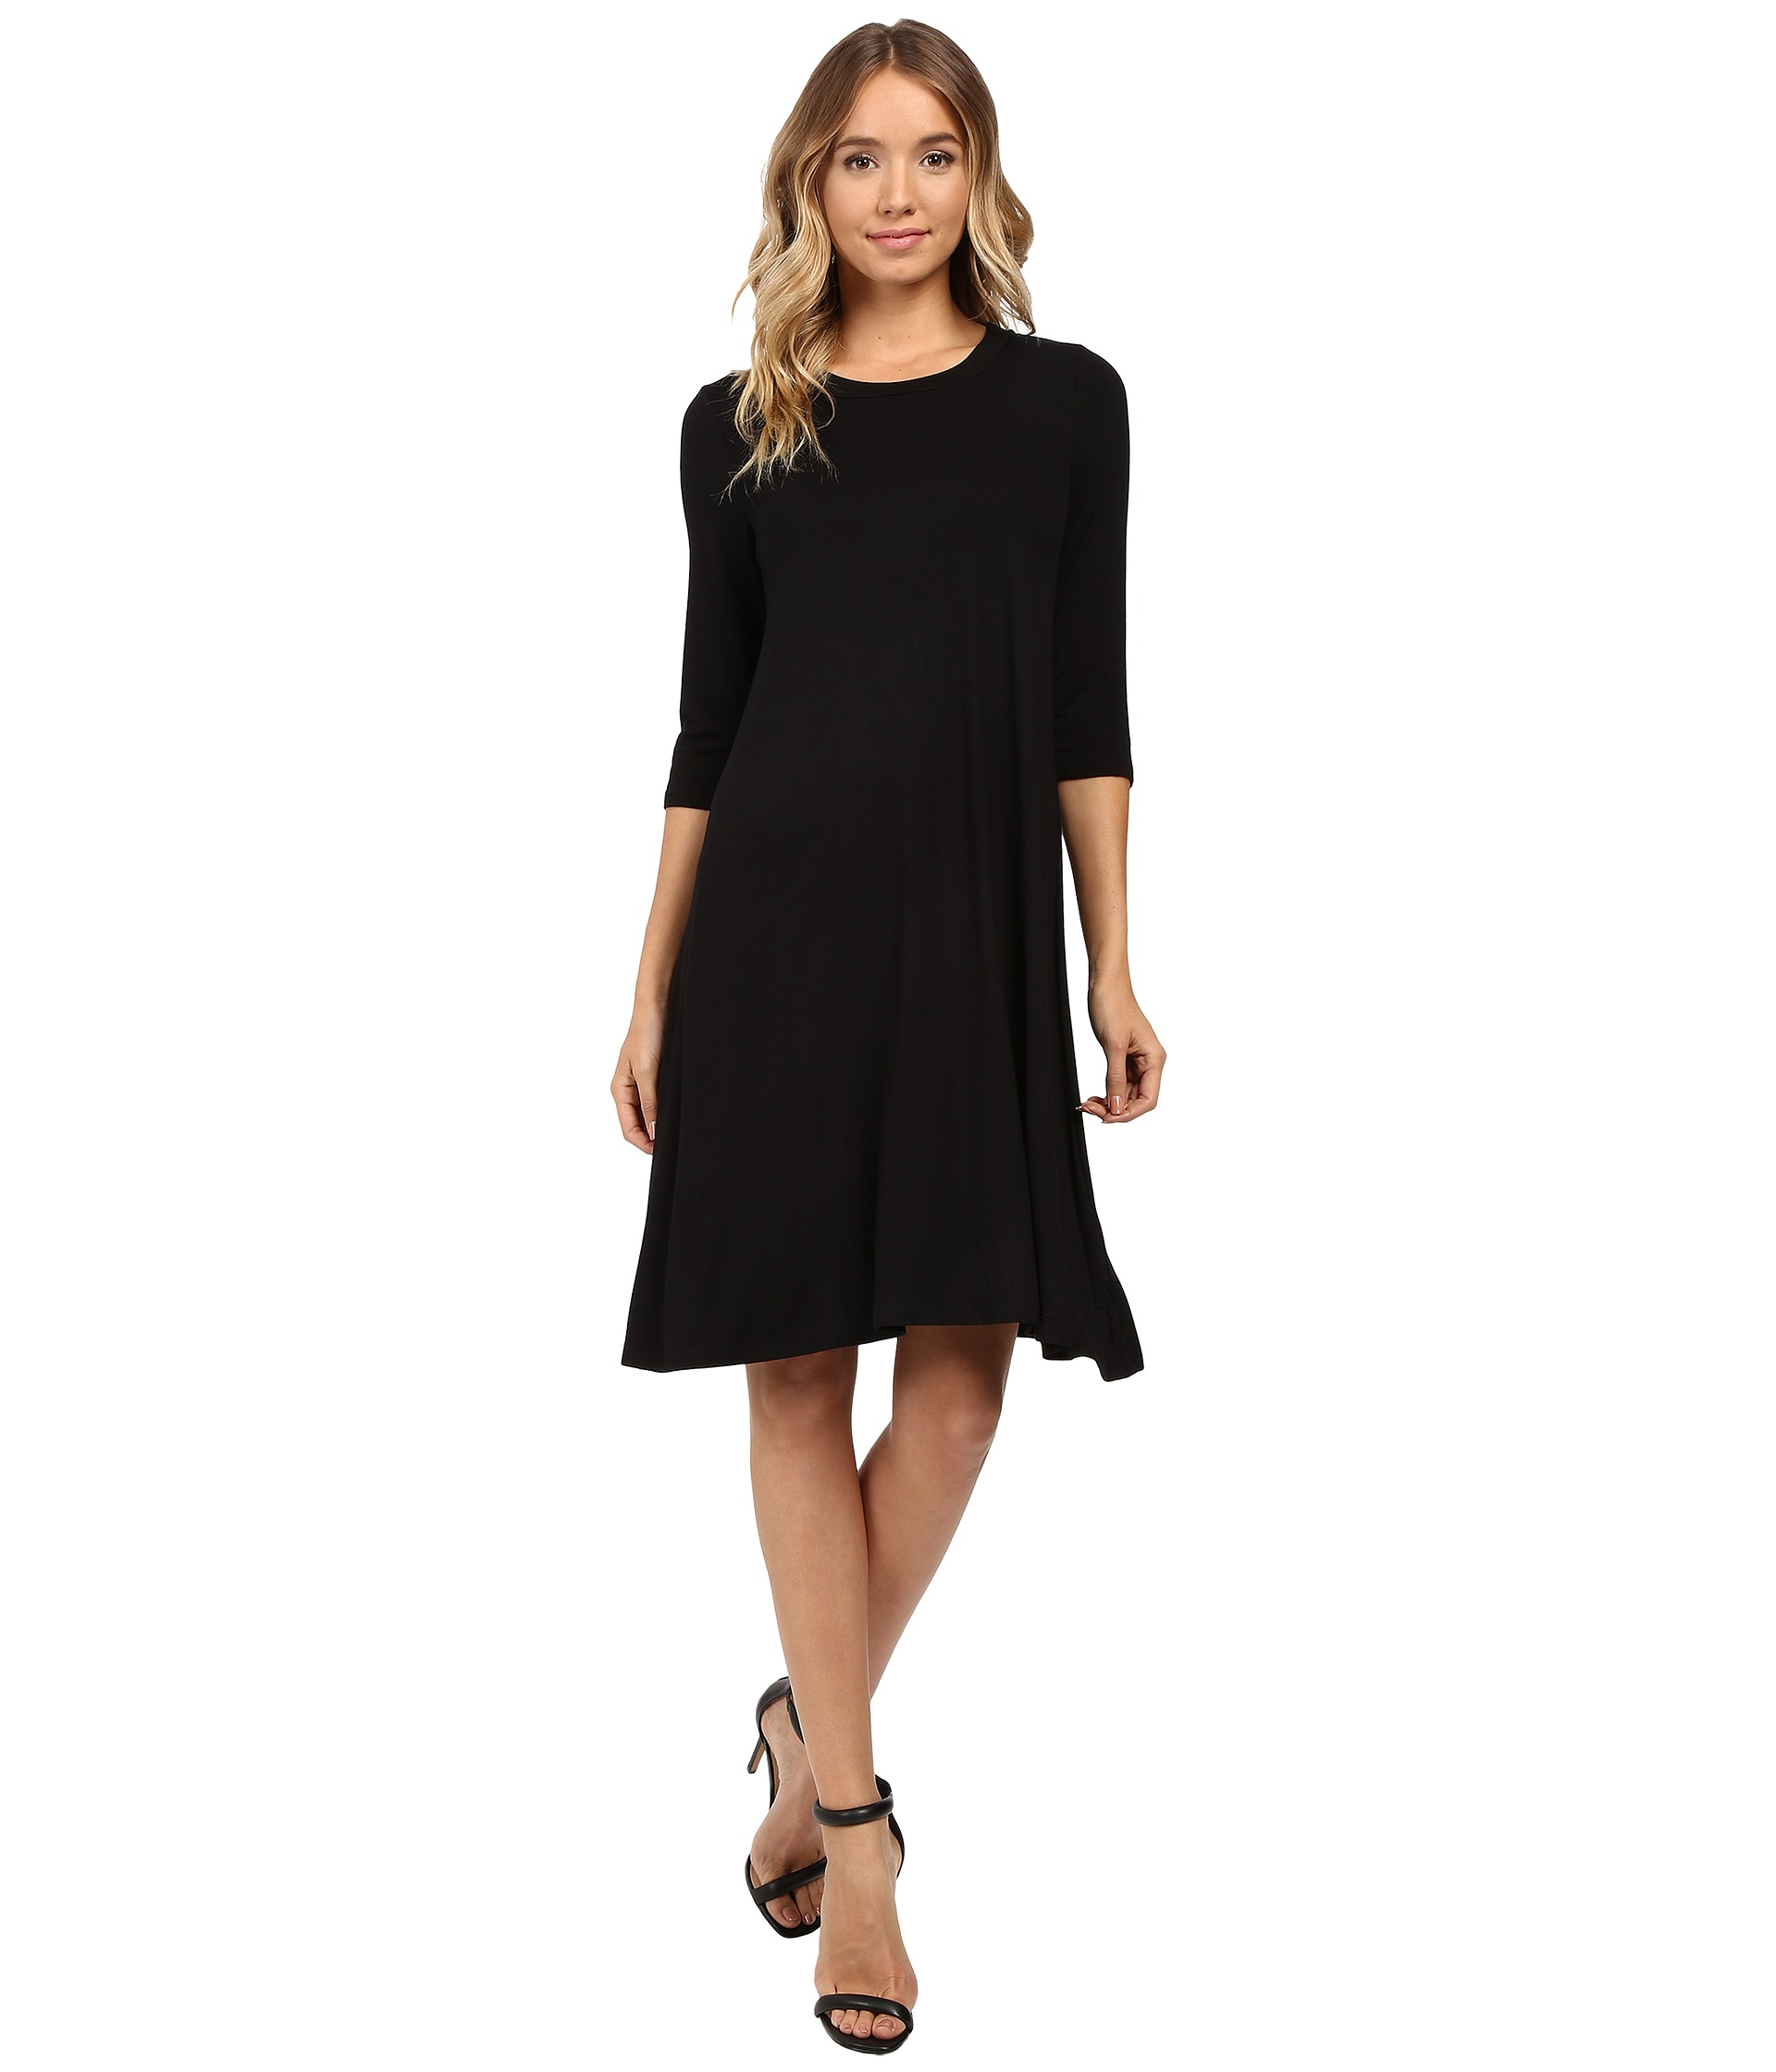 Hundreds of modest dresses your going to love! Shop our fashionable modest dresses you always wanted! Classy dresses that are perfect for Church, weddings .